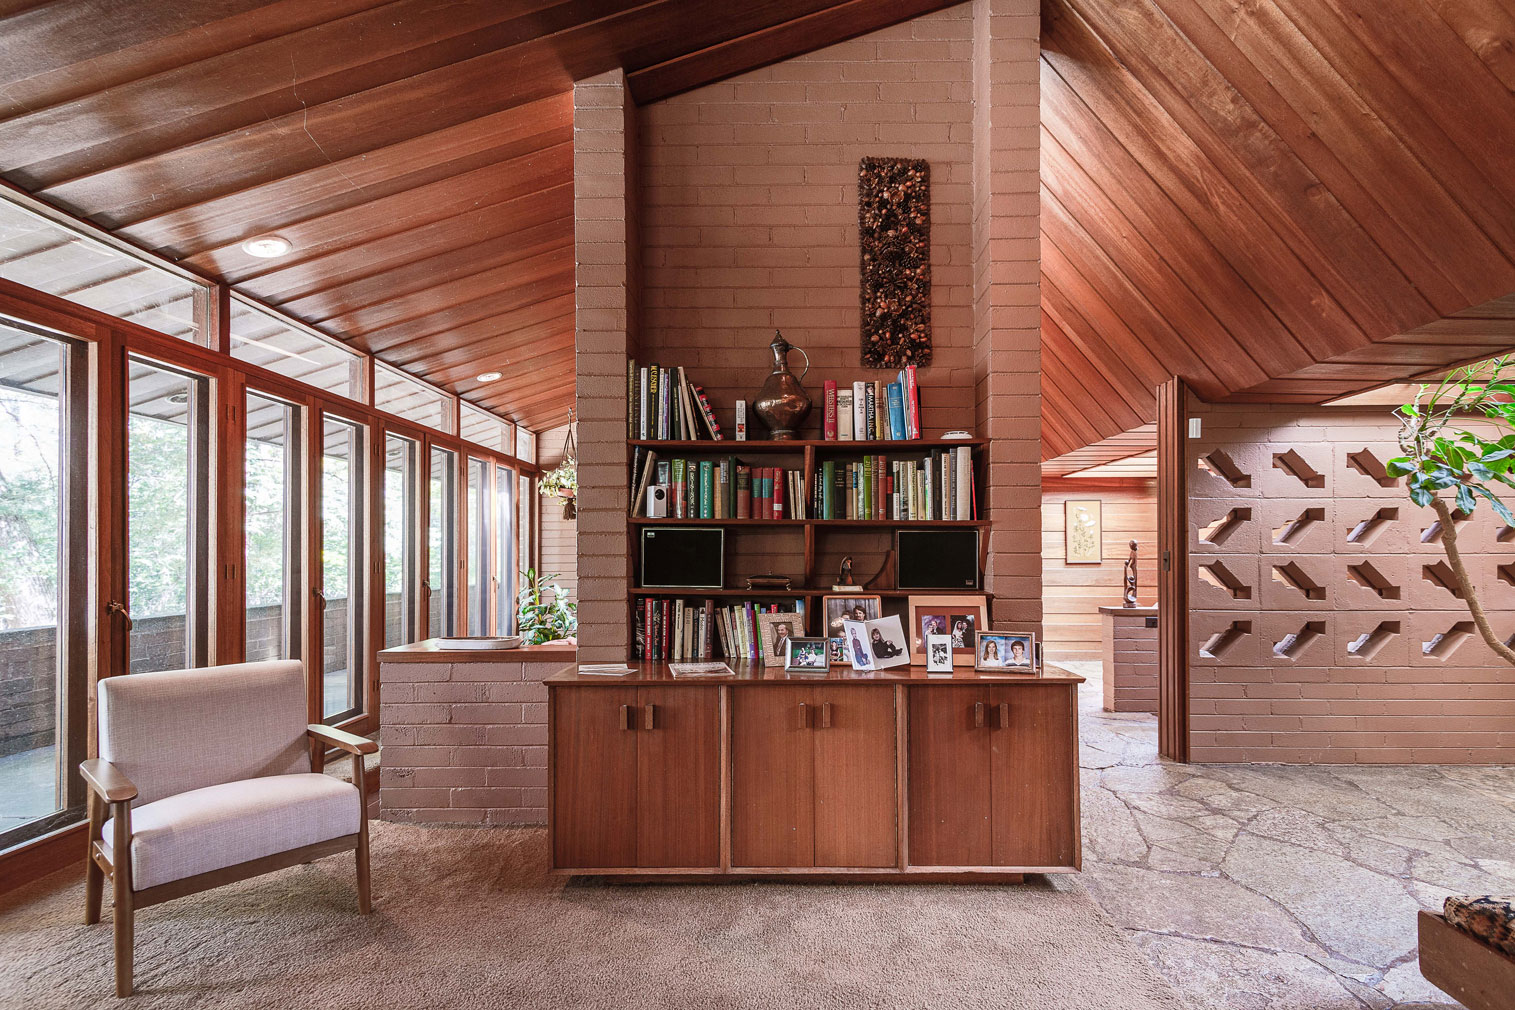 Brick walls have geometric cut outs and support sloping mahogany ceilings